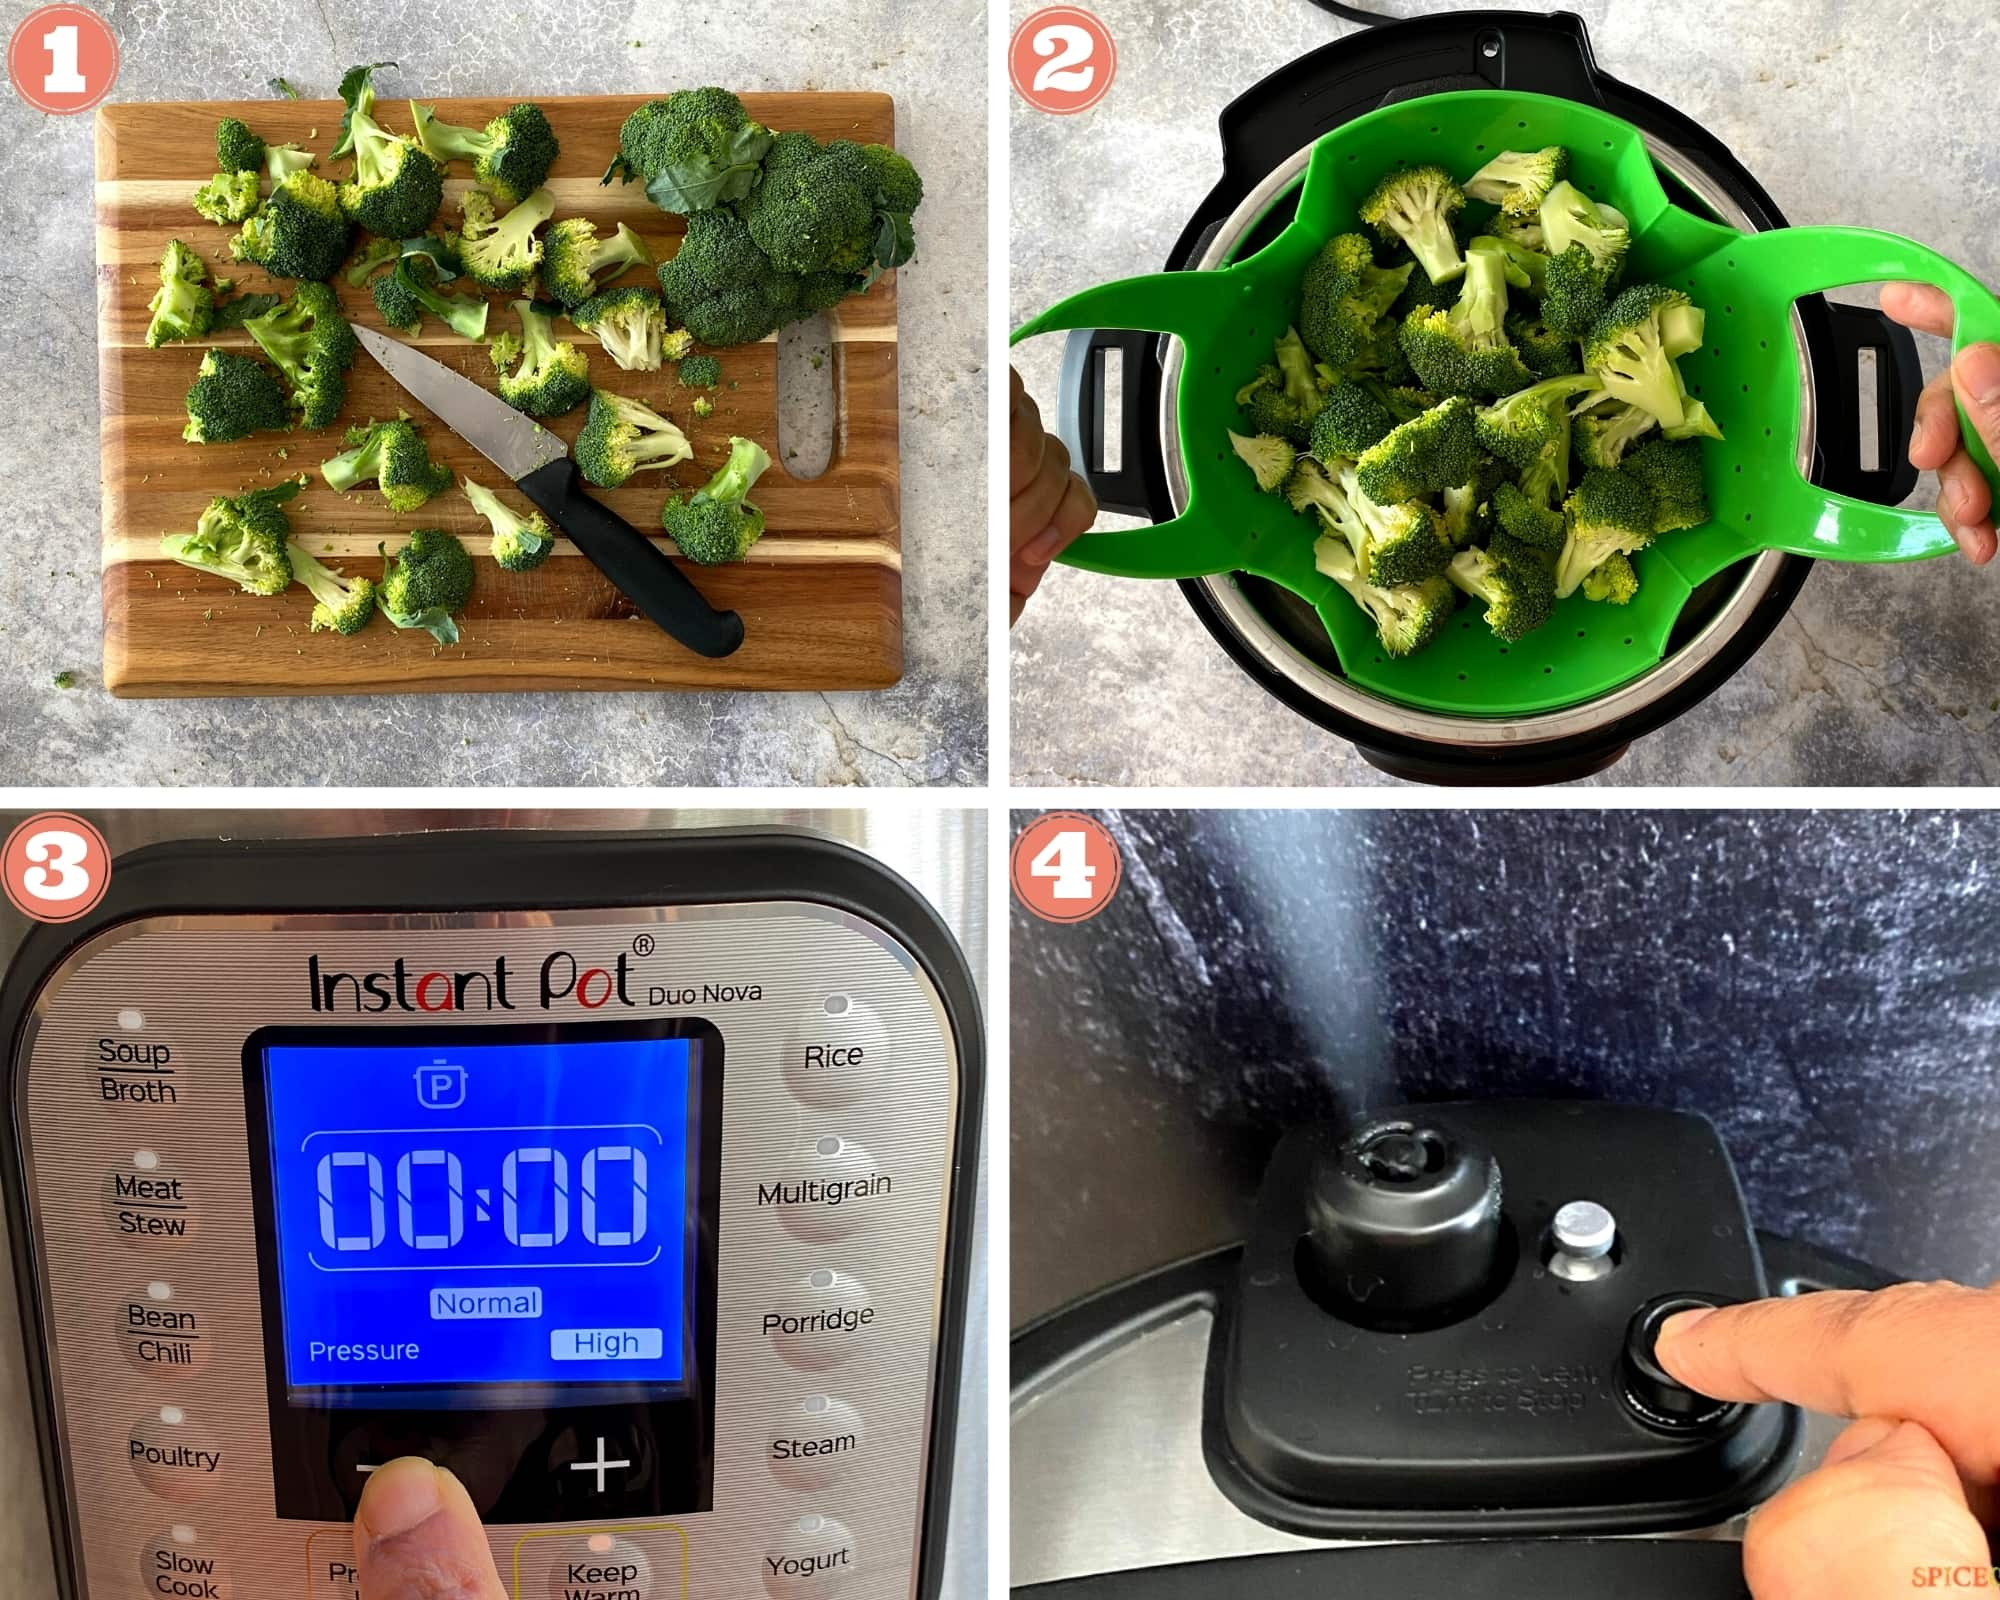 Instructions for how to steam broccoli in the Instant Pot